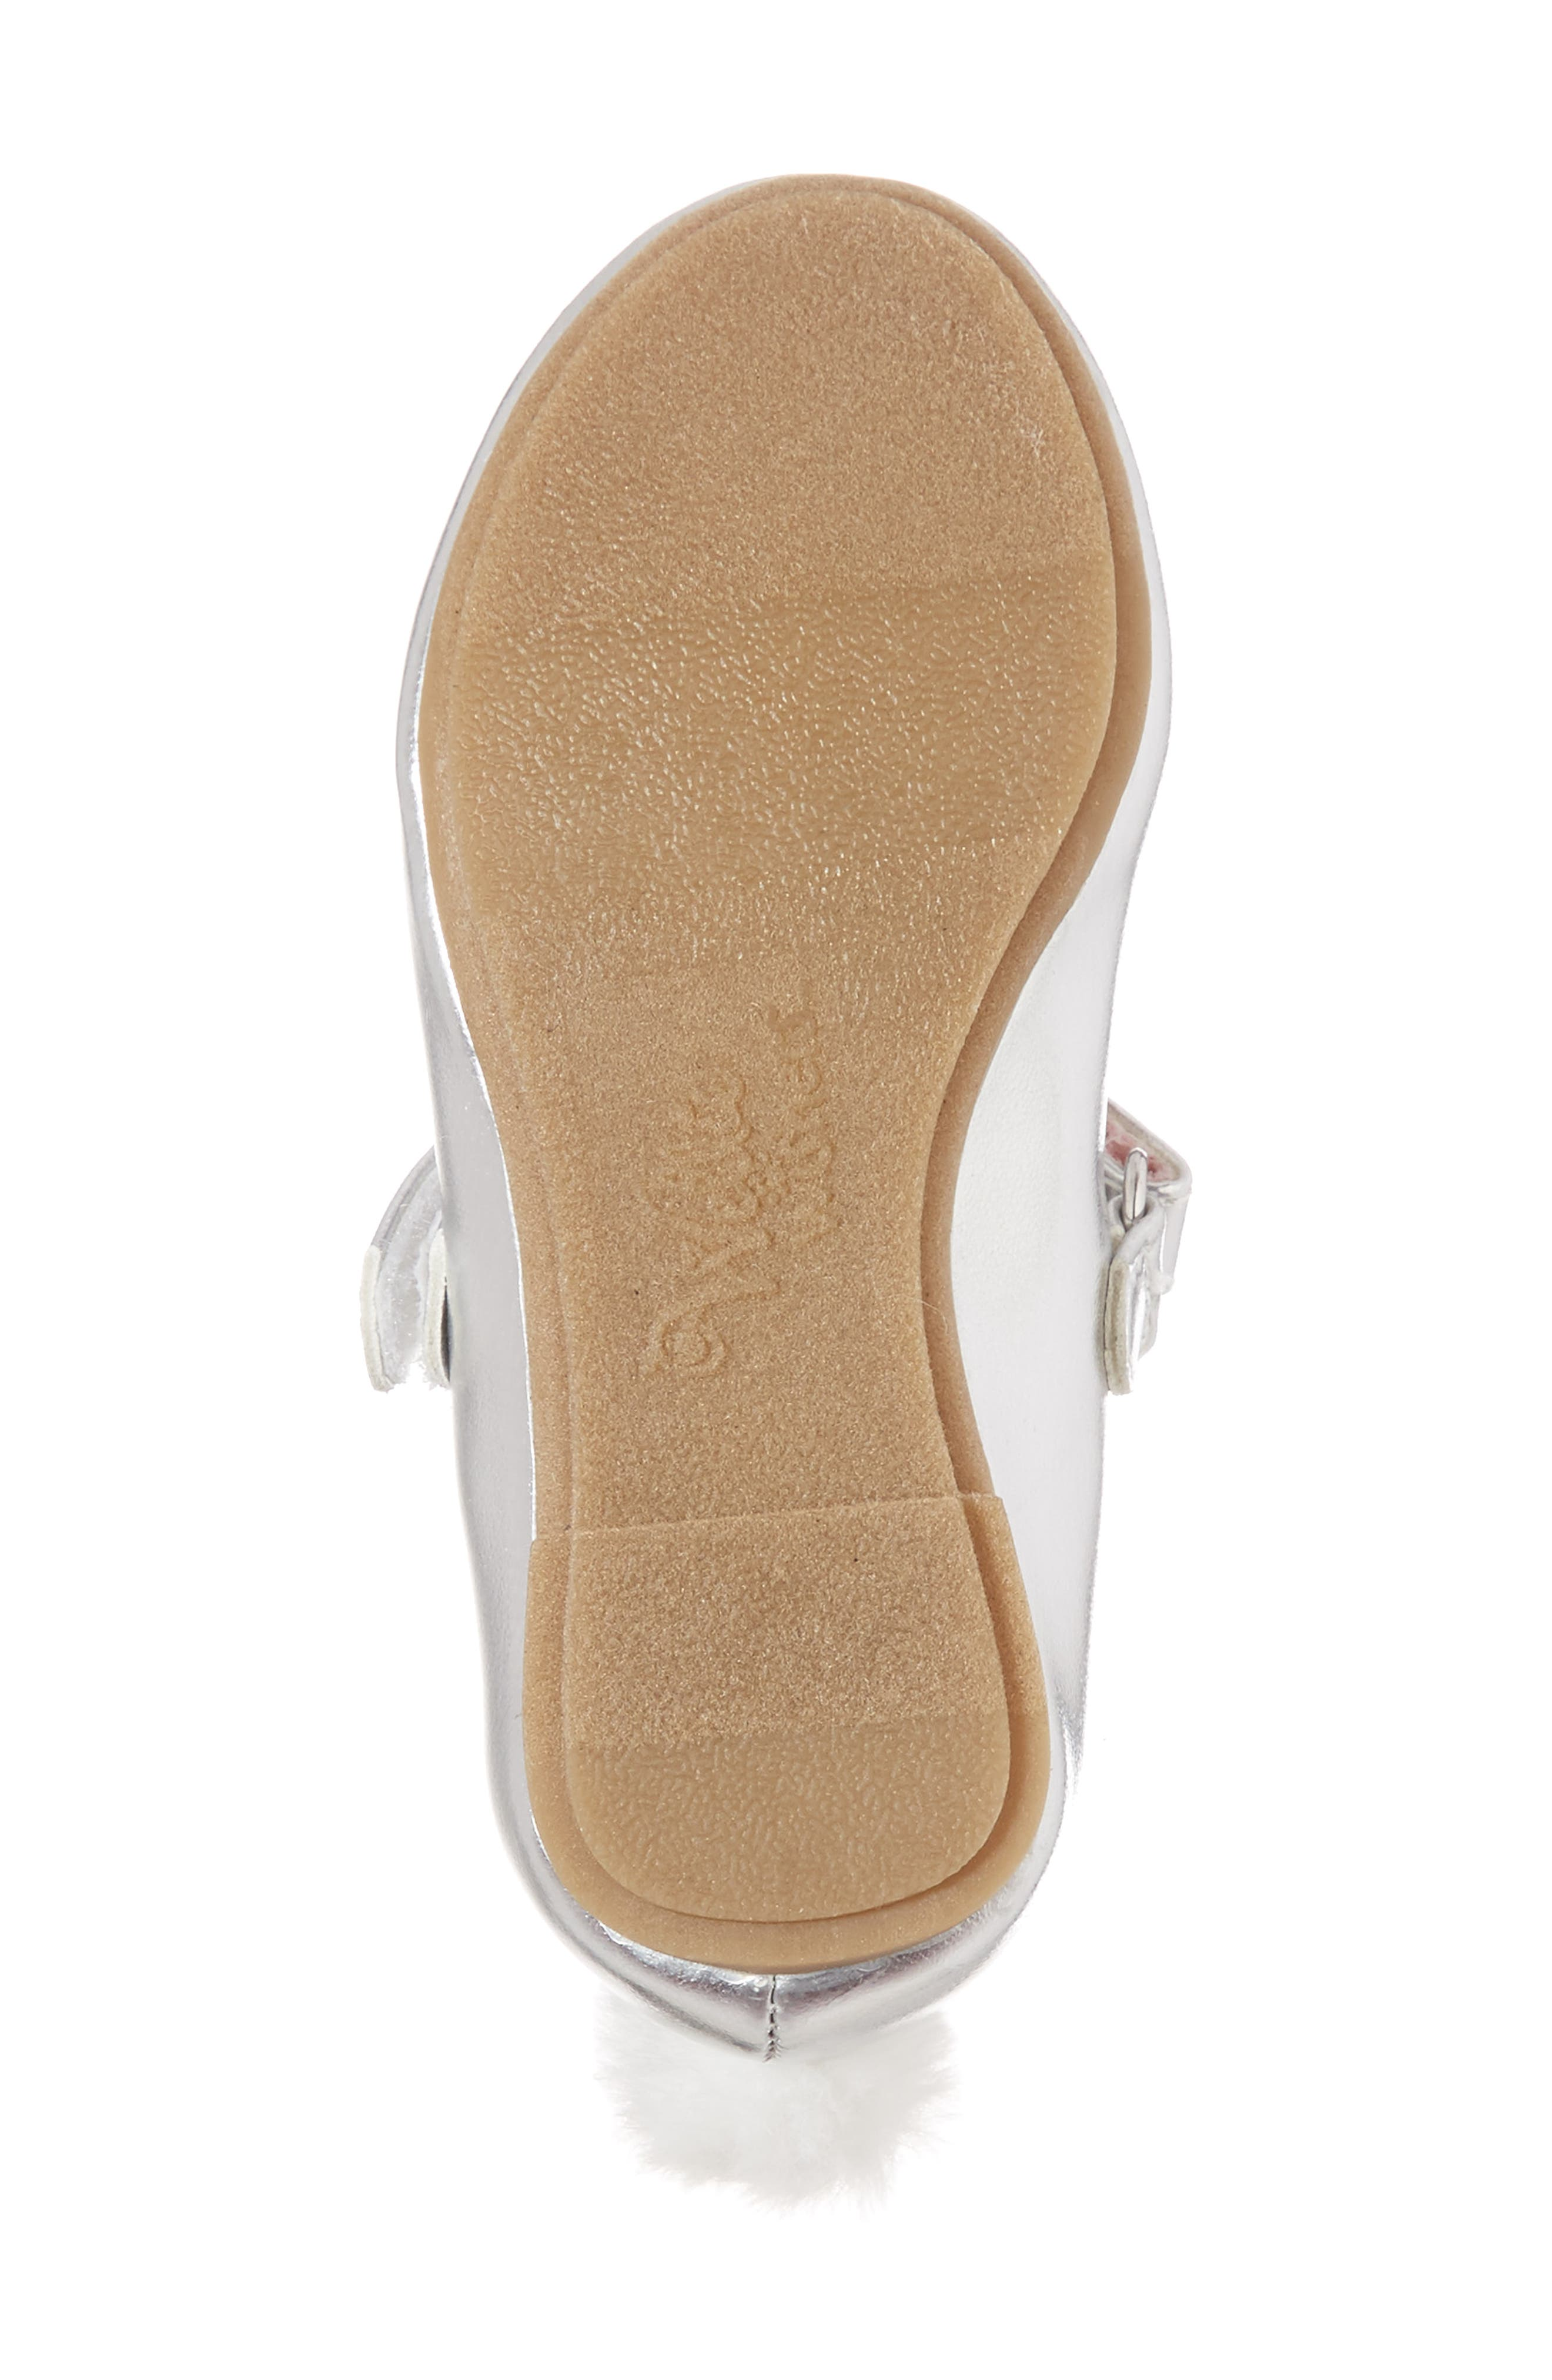 WELLIEWISHERS FROM AMERICAN GIRL,                             Willa Mary Jane Flat,                             Alternate thumbnail 6, color,                             040